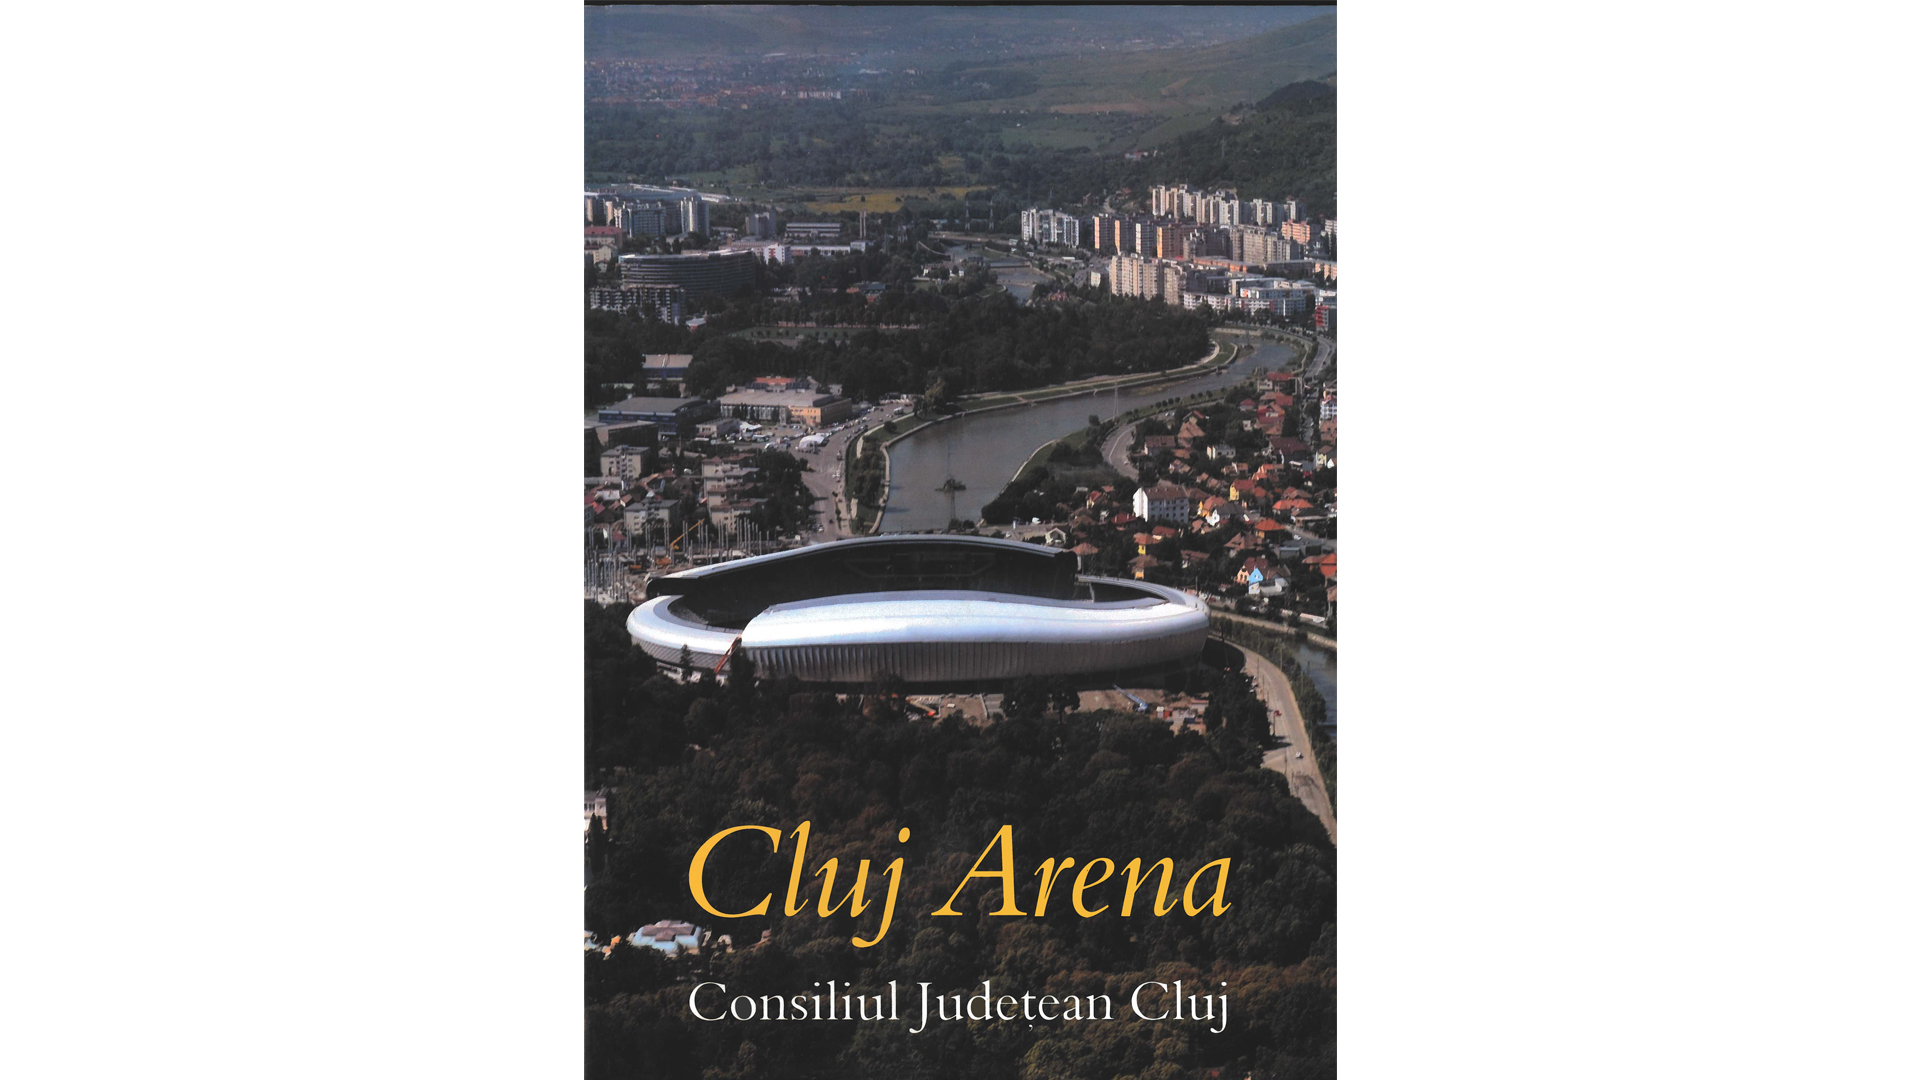 Cluj County Council, Cluj Arena, 2011